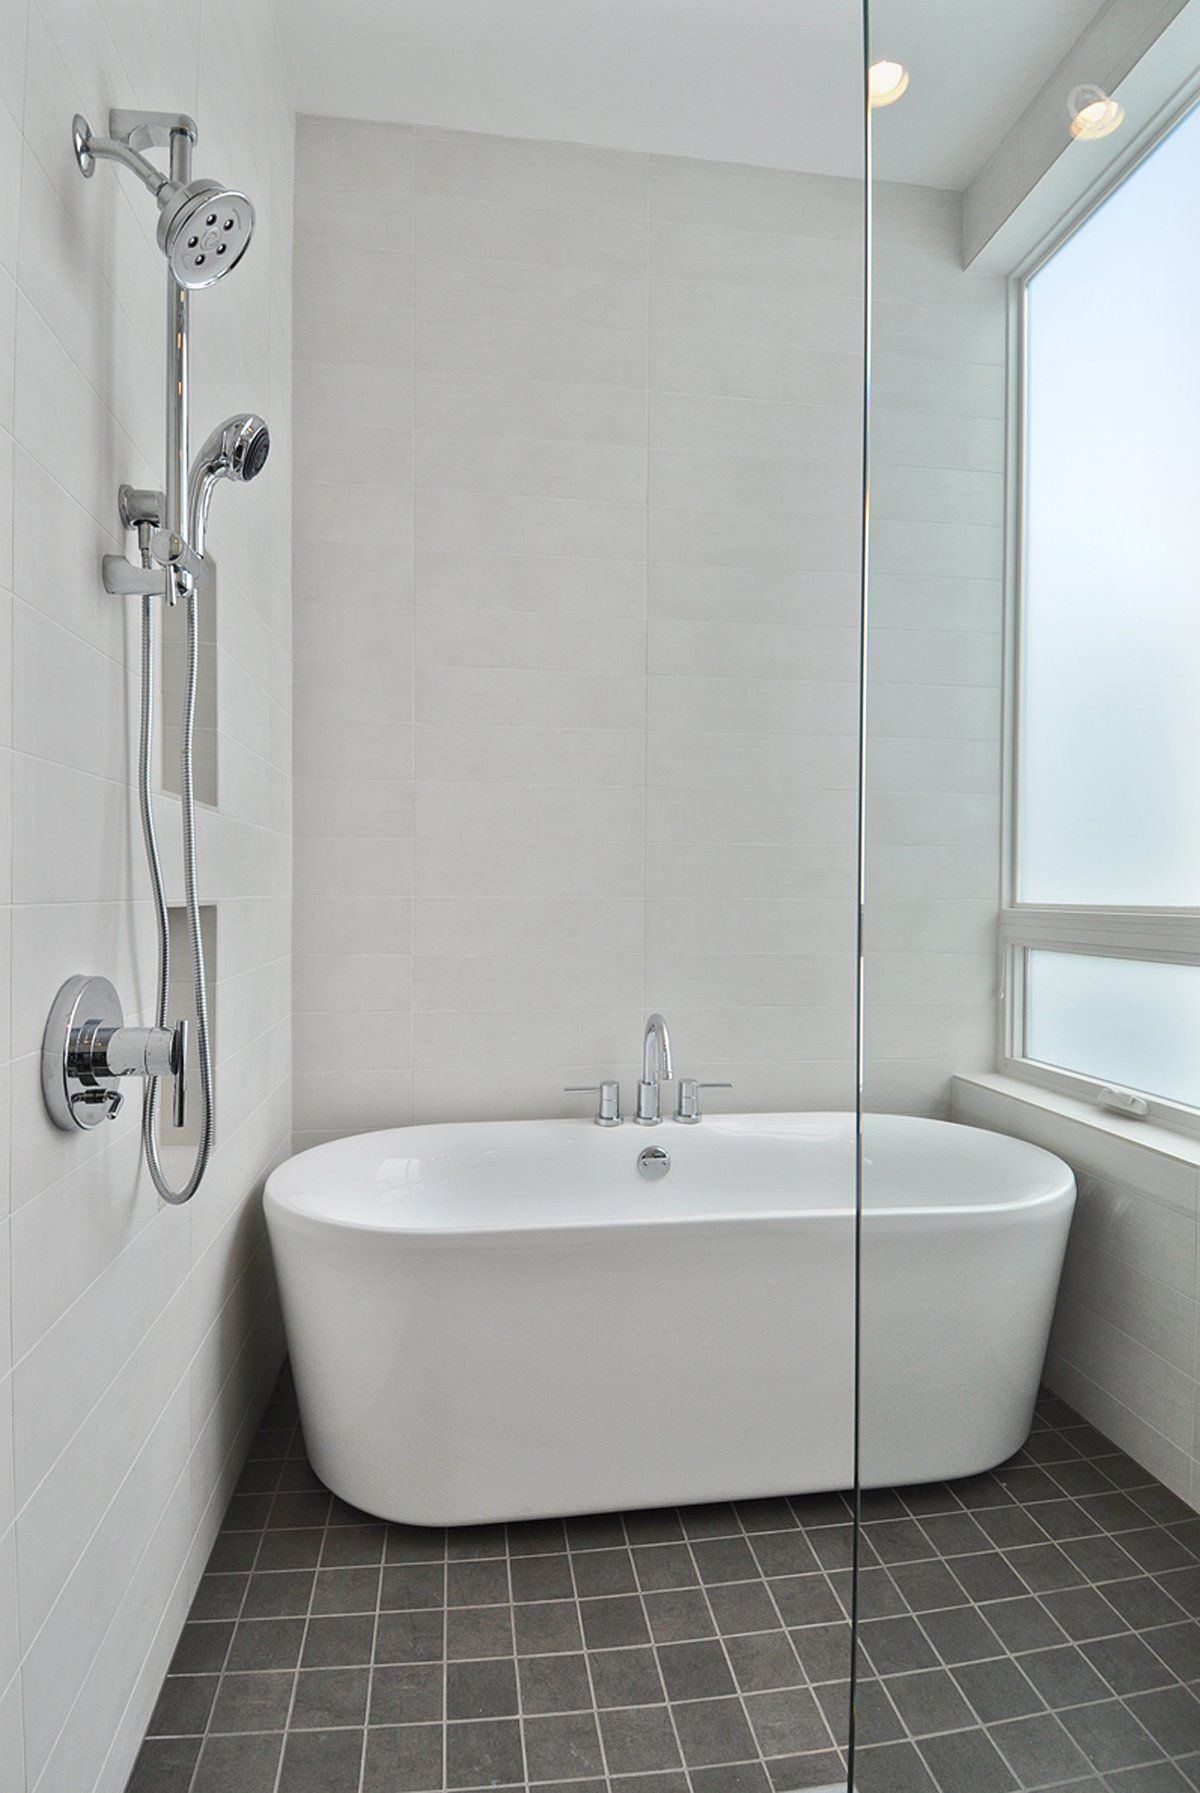 Complete Your Charming Bathroom With Freestanding Tubs Ideas: White Freestanding  Tubs On Dark Floor Matched With White Wall And Faucet Shower Plus Frameless  ...